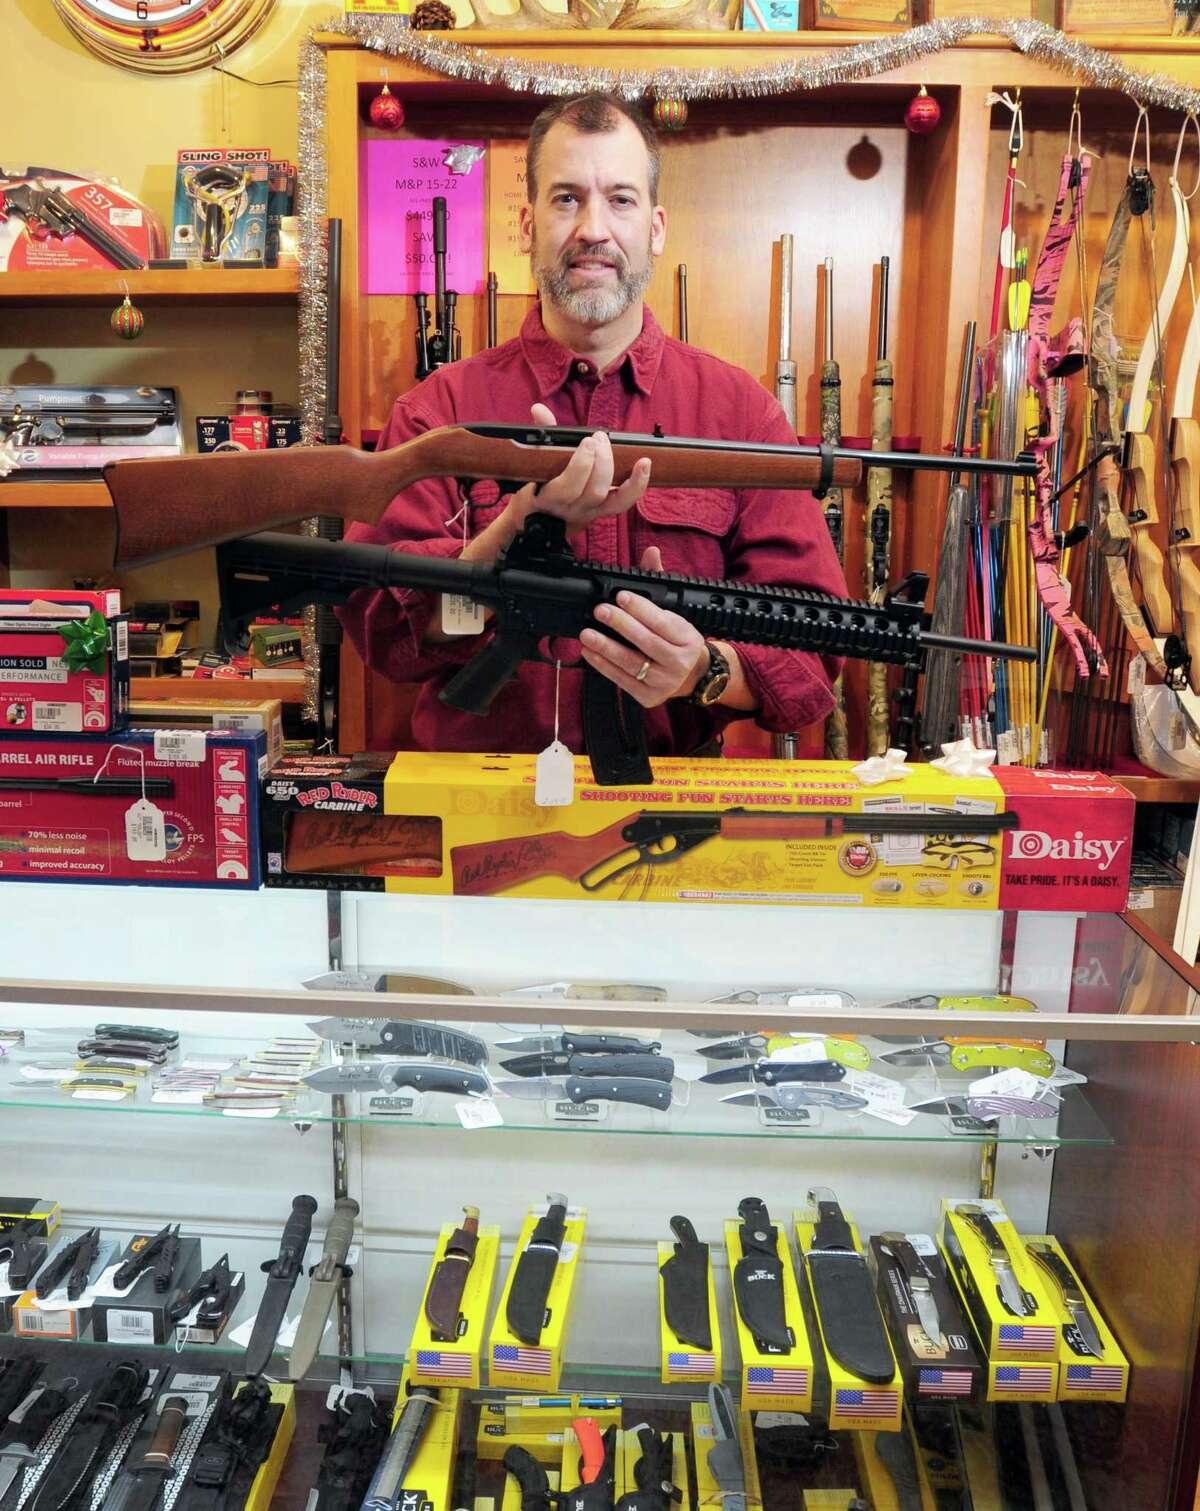 Mike Higgins, co-owner of TGS Outdoors in Branford, holds a Ruger 10/22 semi-automatic rifle, above, and a Smith & Wesson M&P 15/22 semi-automatic rifle, below, both chambered in .22 Long Rifle in 2013.